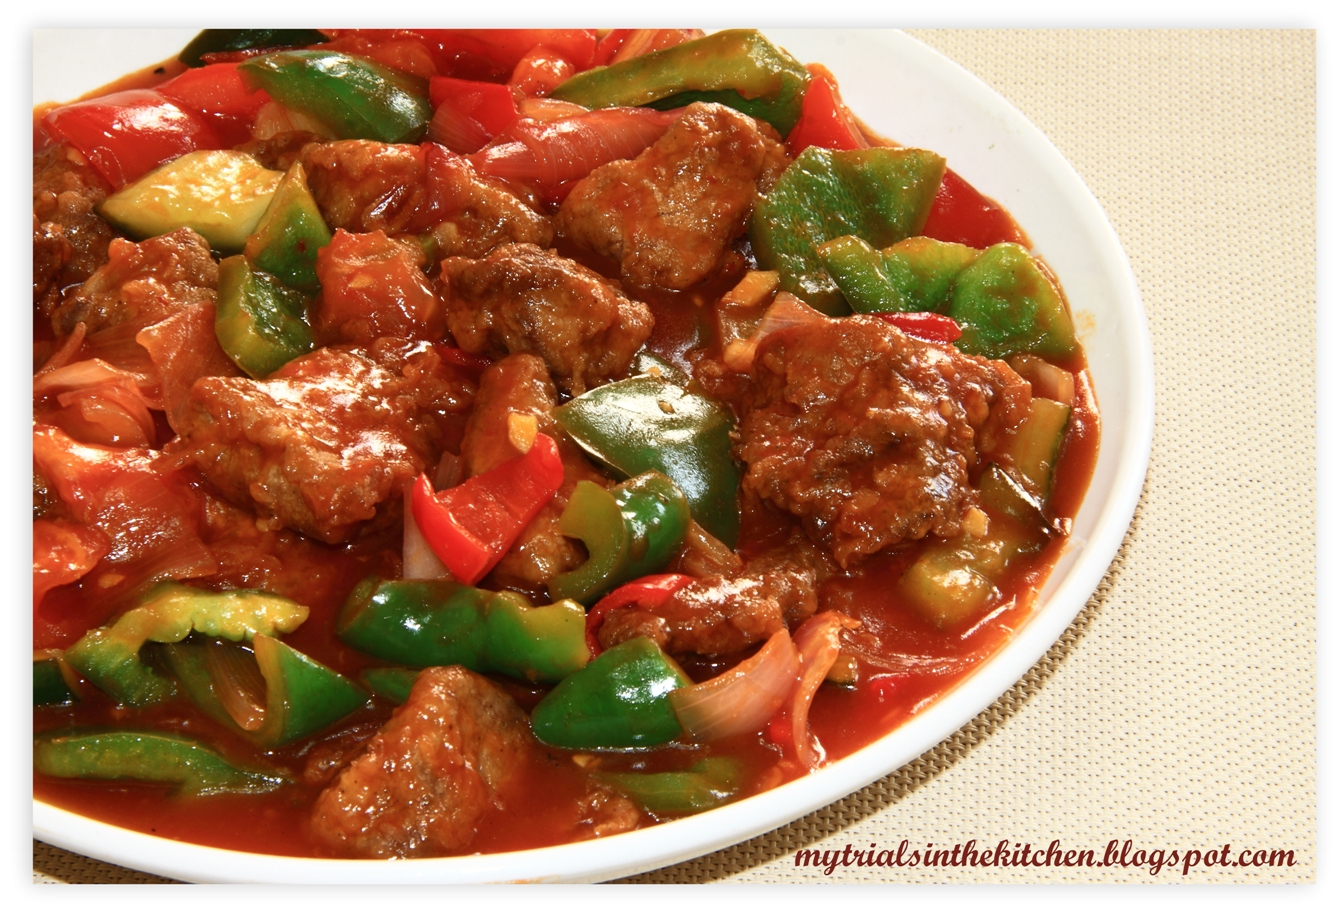 ... that I have missed for so long - Sweet and Sour Pork (咕噜肉